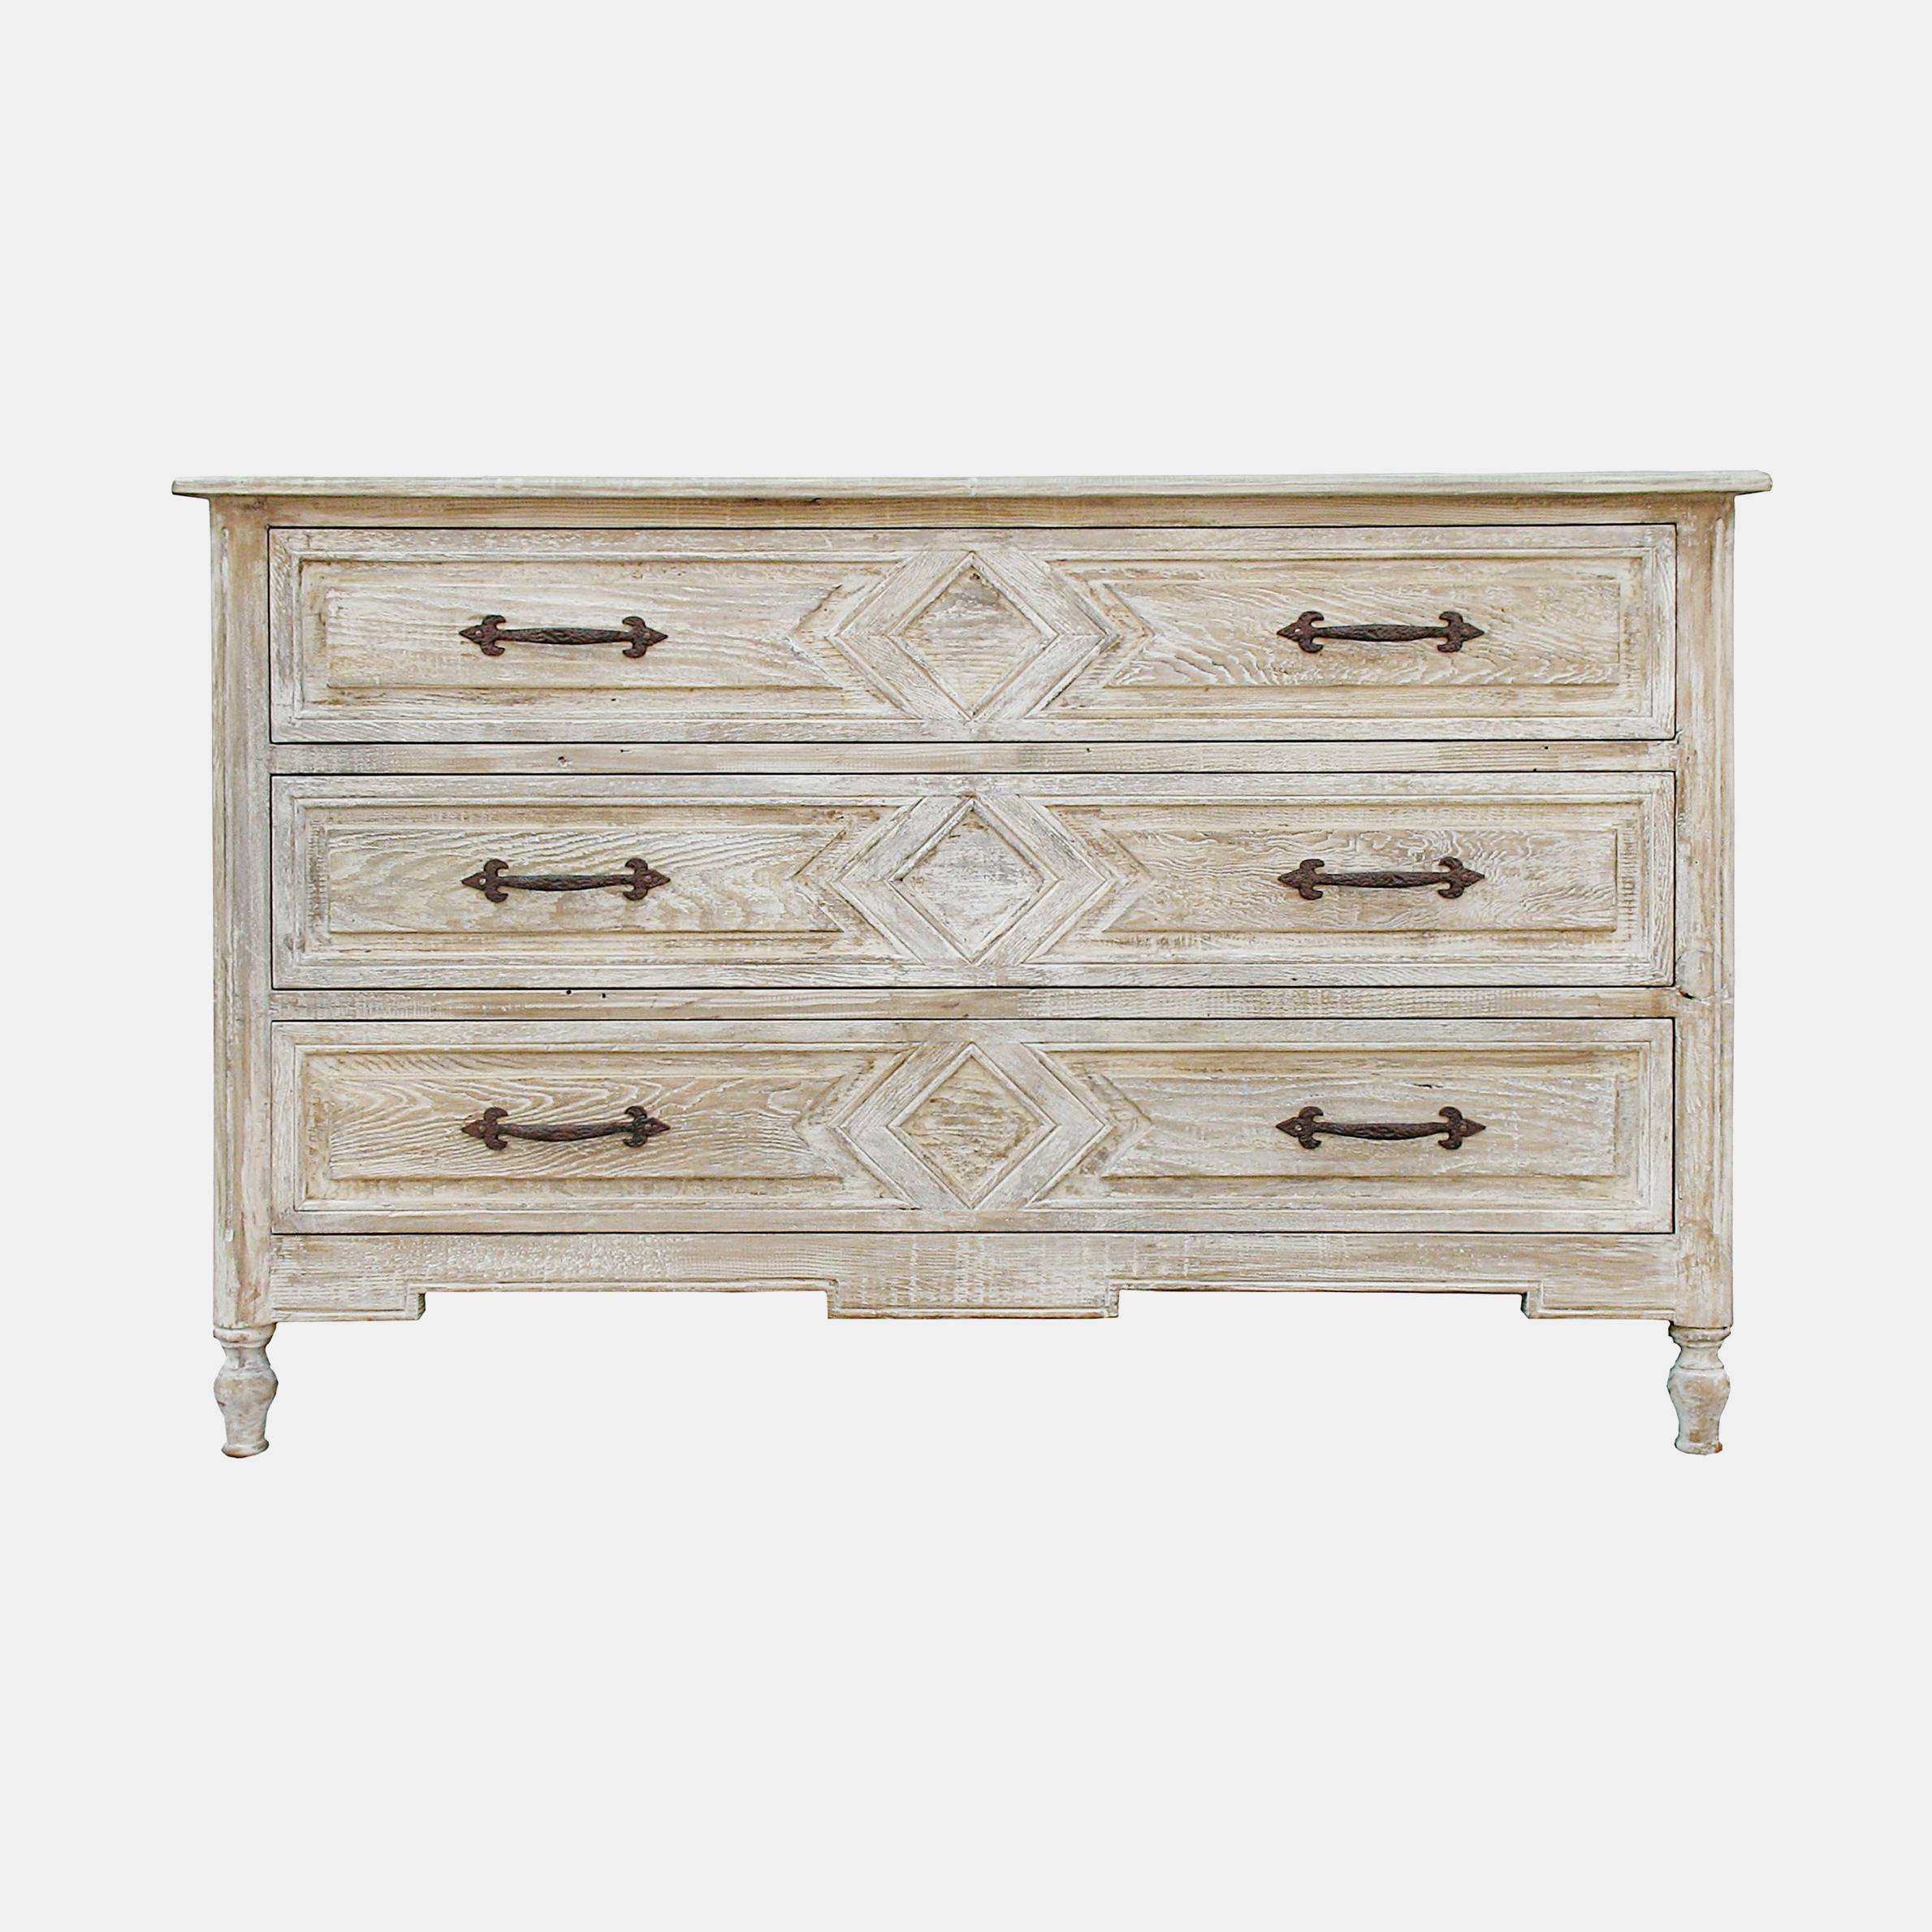 "Anderson Dresser  54""l x 23""d x 34""h Also available in 6-drawer dresser 80""l x 22""d x 36.5""h and 3-drawer nightstand 30""l x 20""d x 30""h. SKU887CFC"